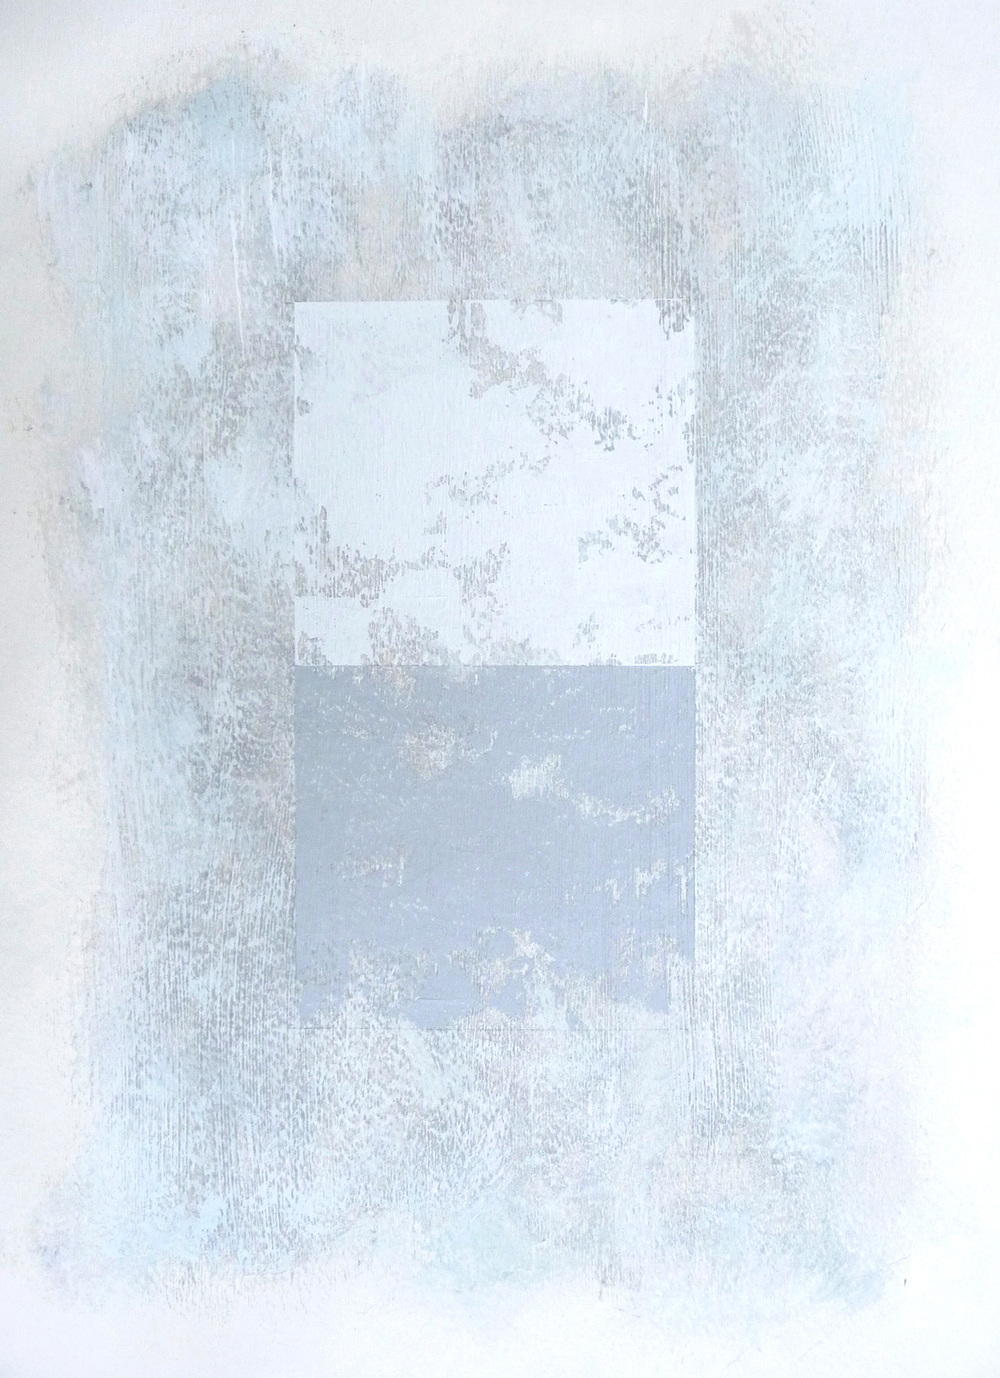 Svinøya in White I  , 2016. Mixed media on paper. 15 x 11 inches (38.1 x 27.9 cm)